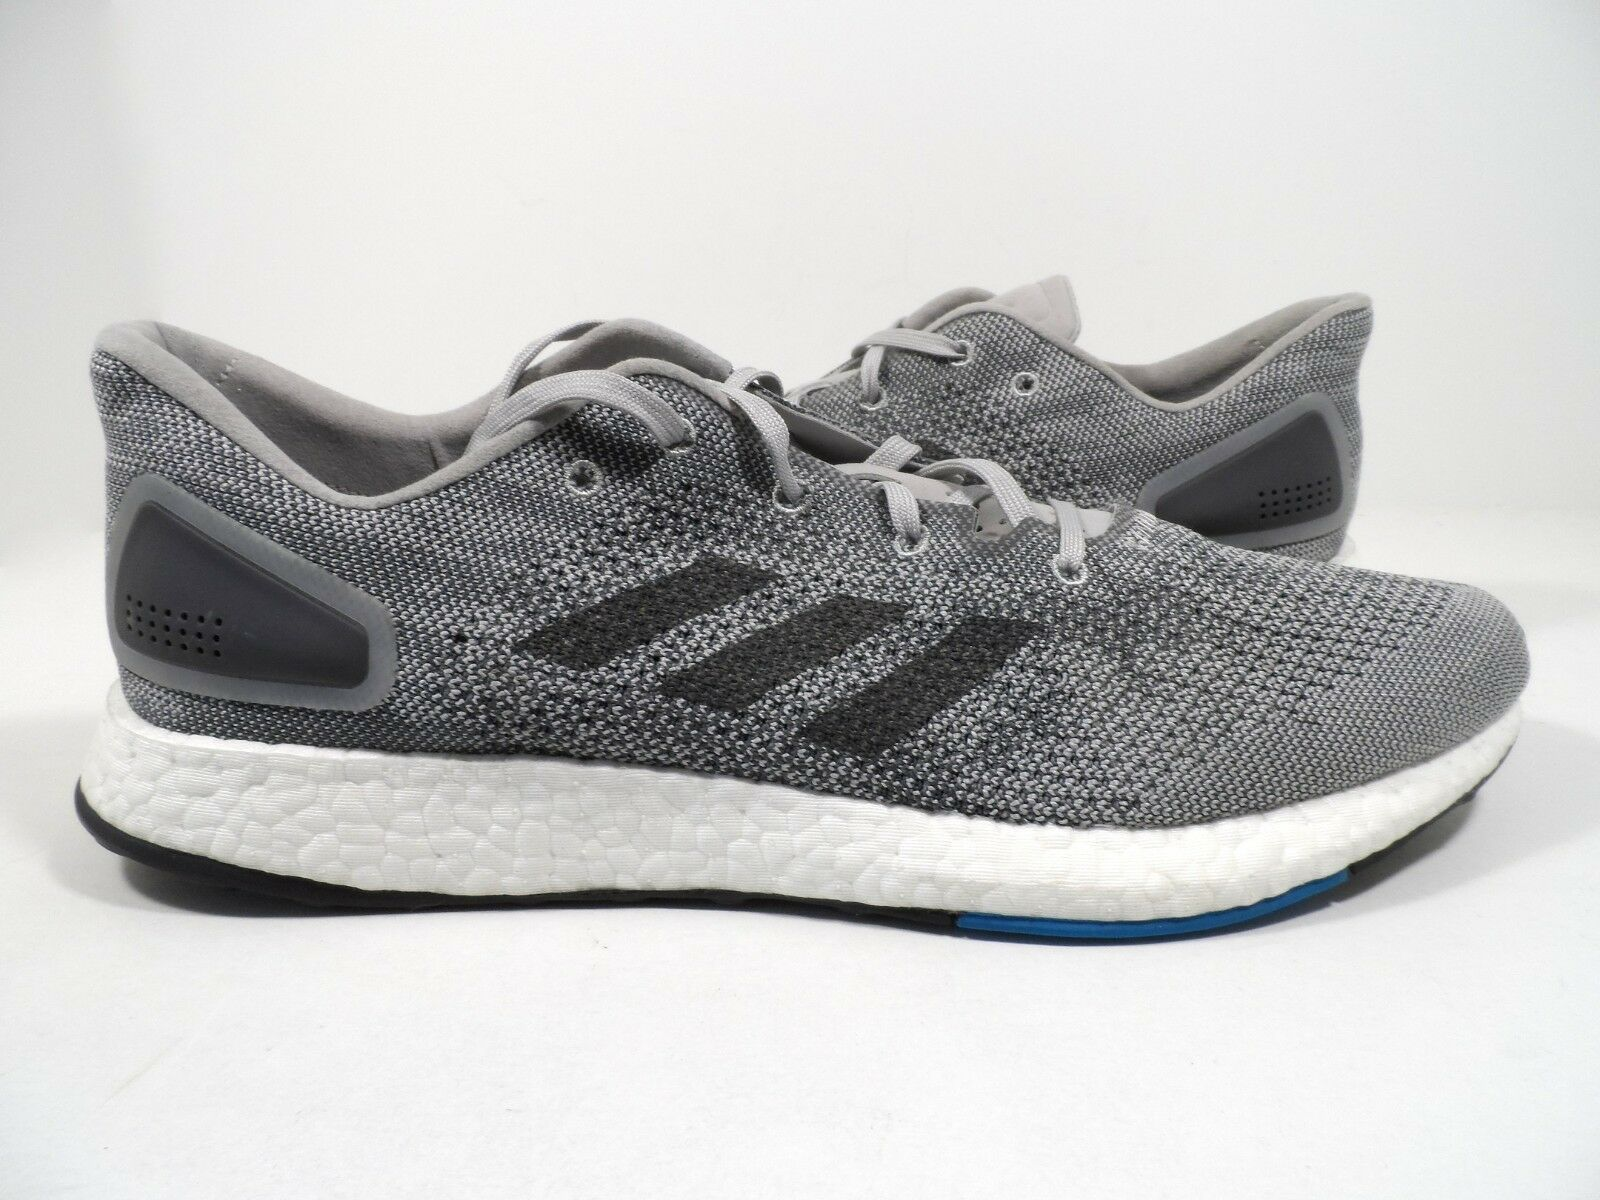 another chance 362e2 361a2 Adidas Men s PureBOOST DPR Running shoes shoes shoes GREY Size 13 74452f